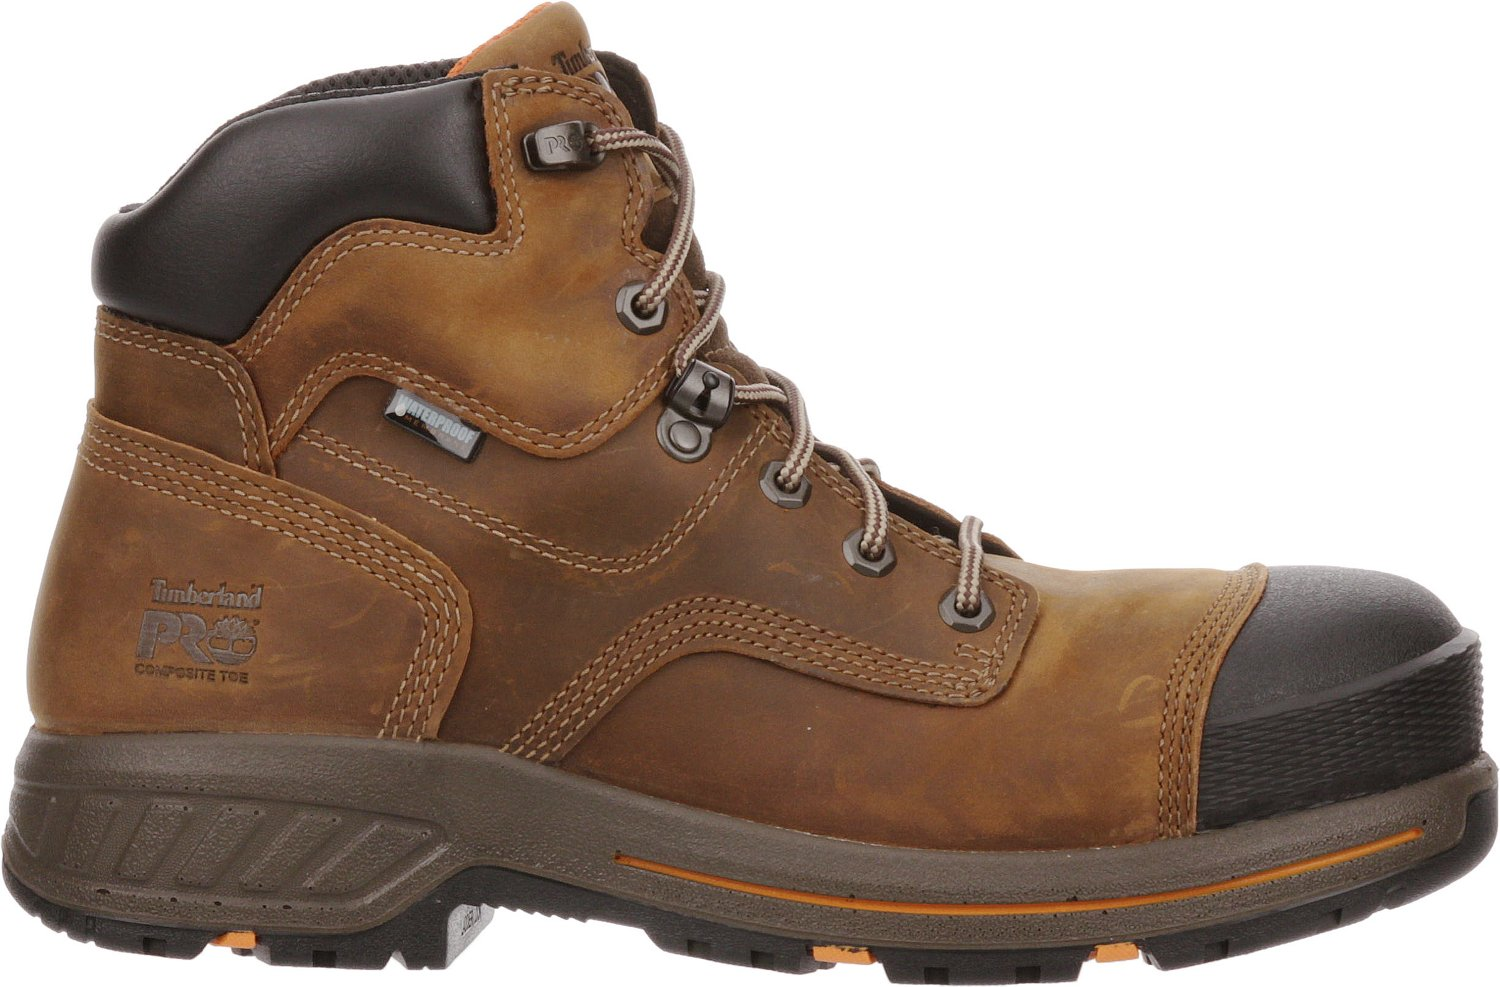 e3e3652e017 Timberland Men's PRO Helix HD 6 in EH Steel Lace Up Work Boots